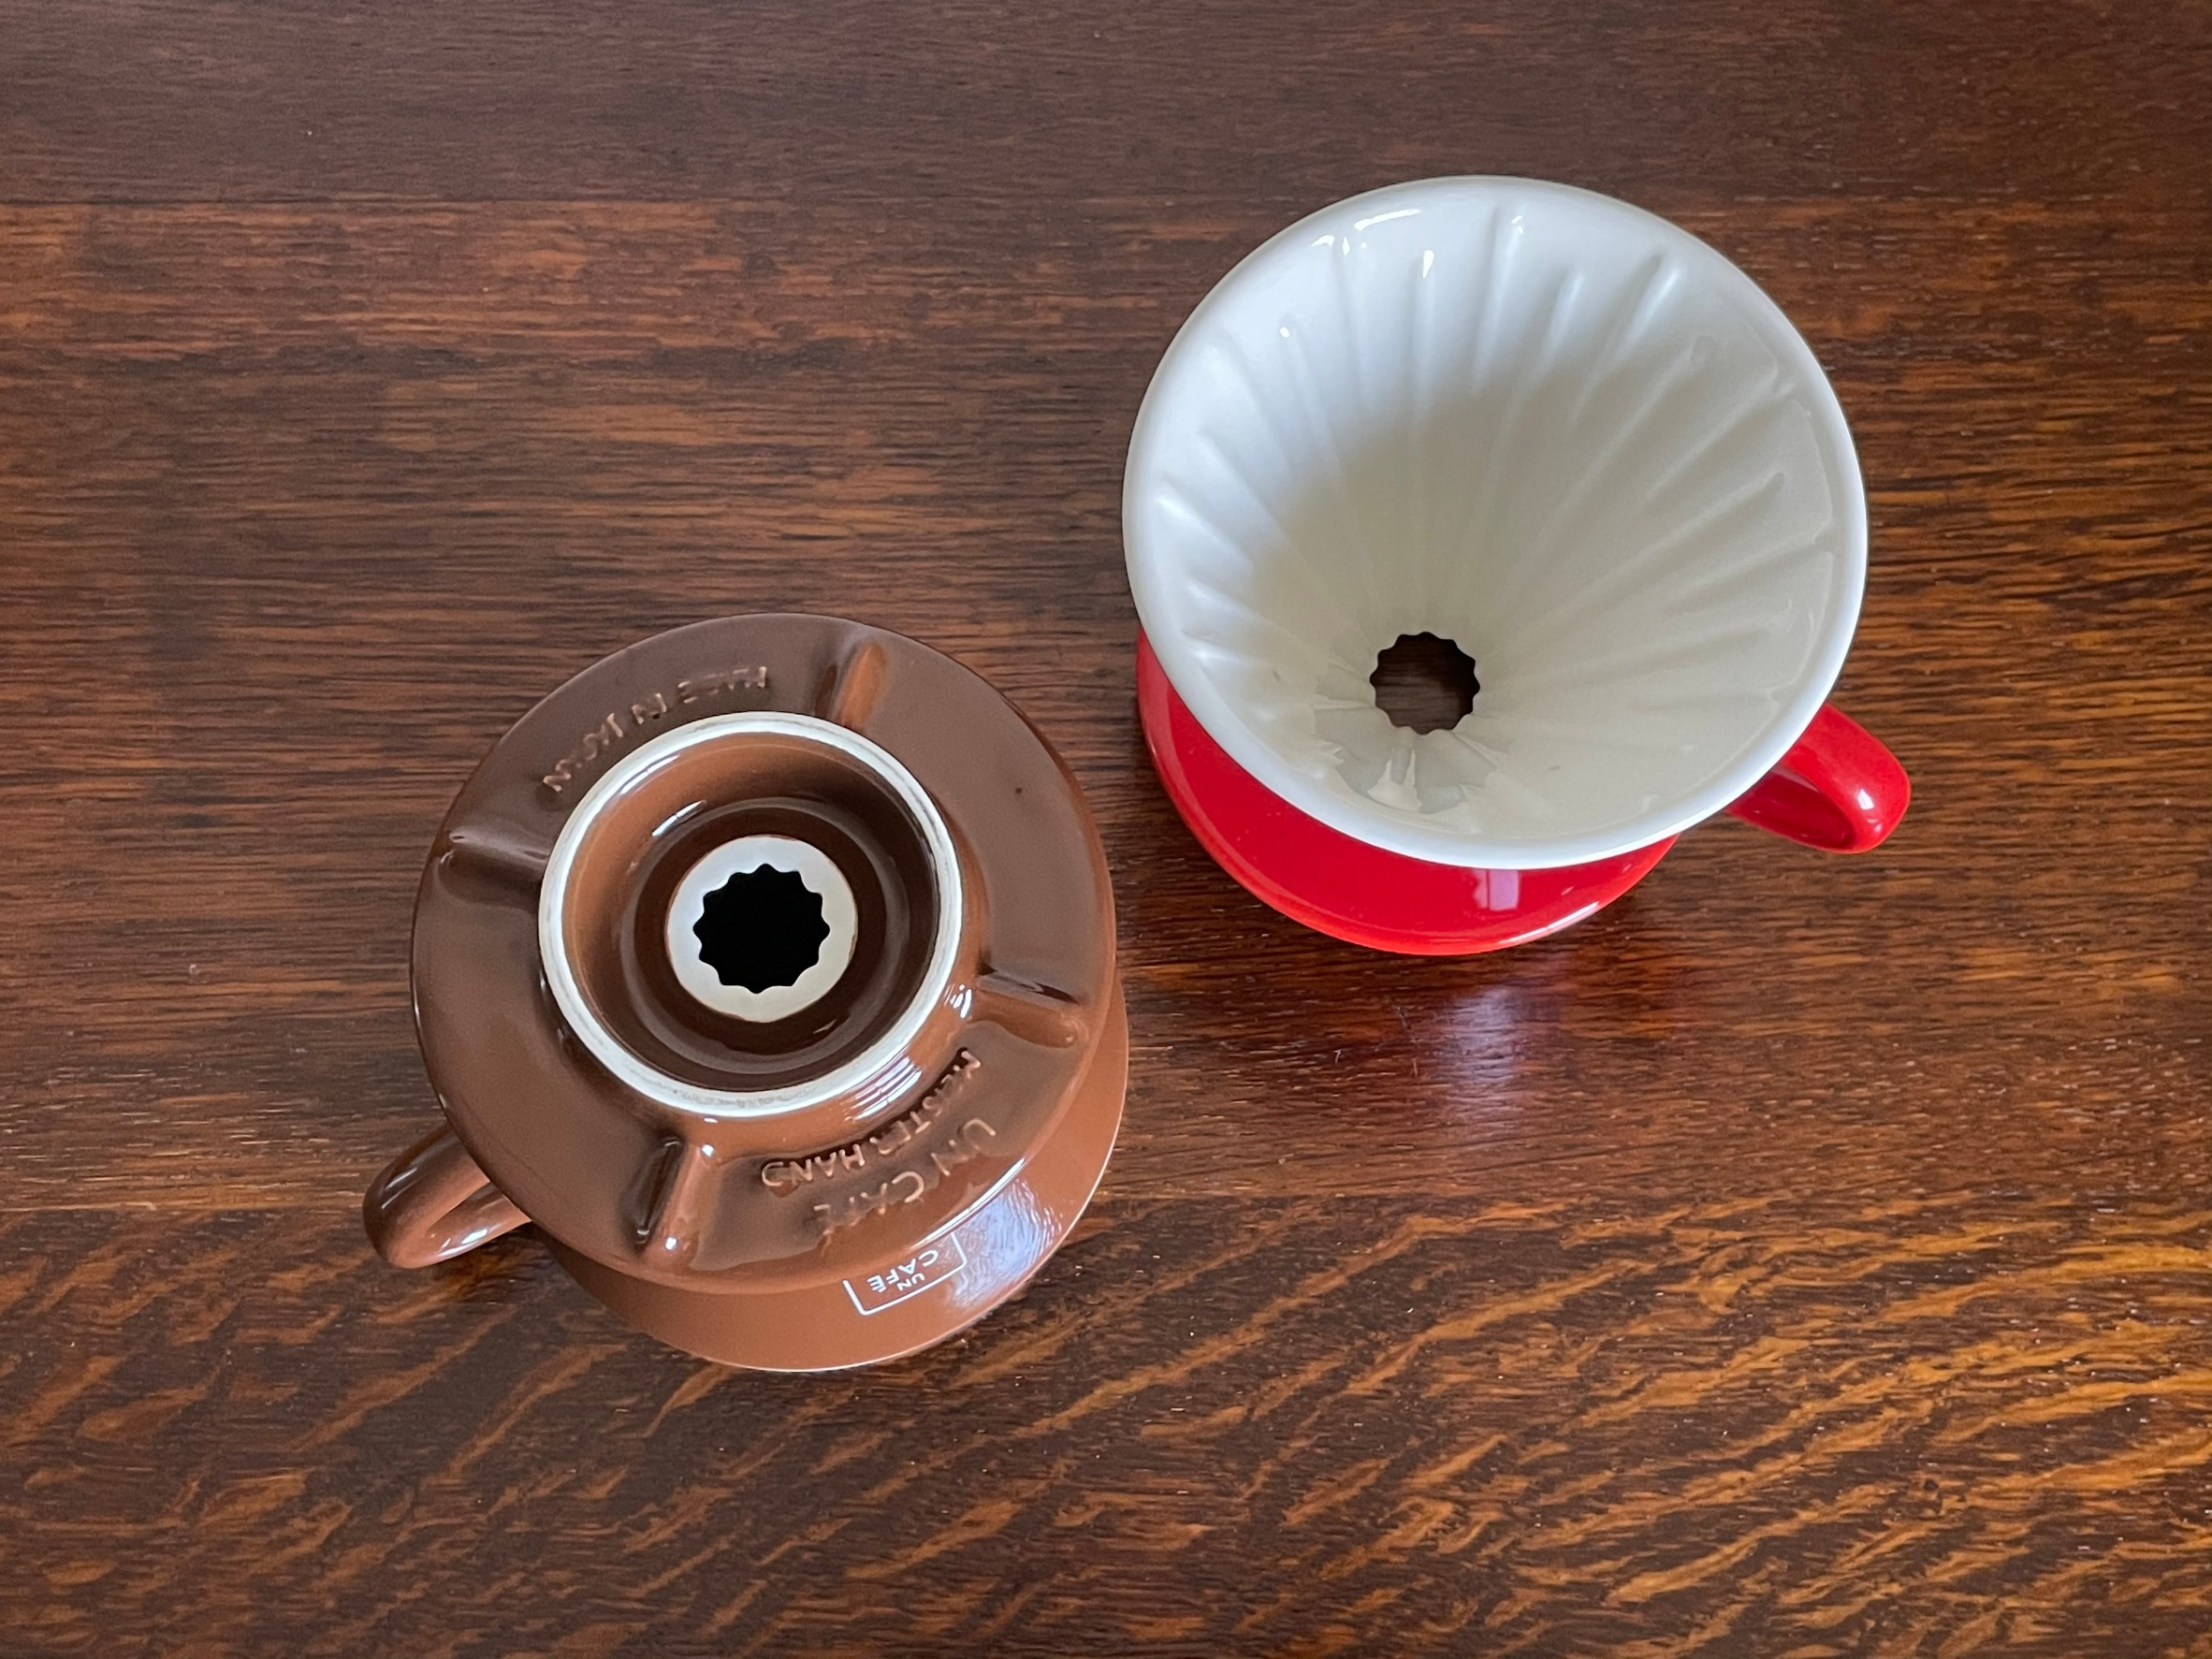 UN CAFE MEISTER HAND Coffee dripper